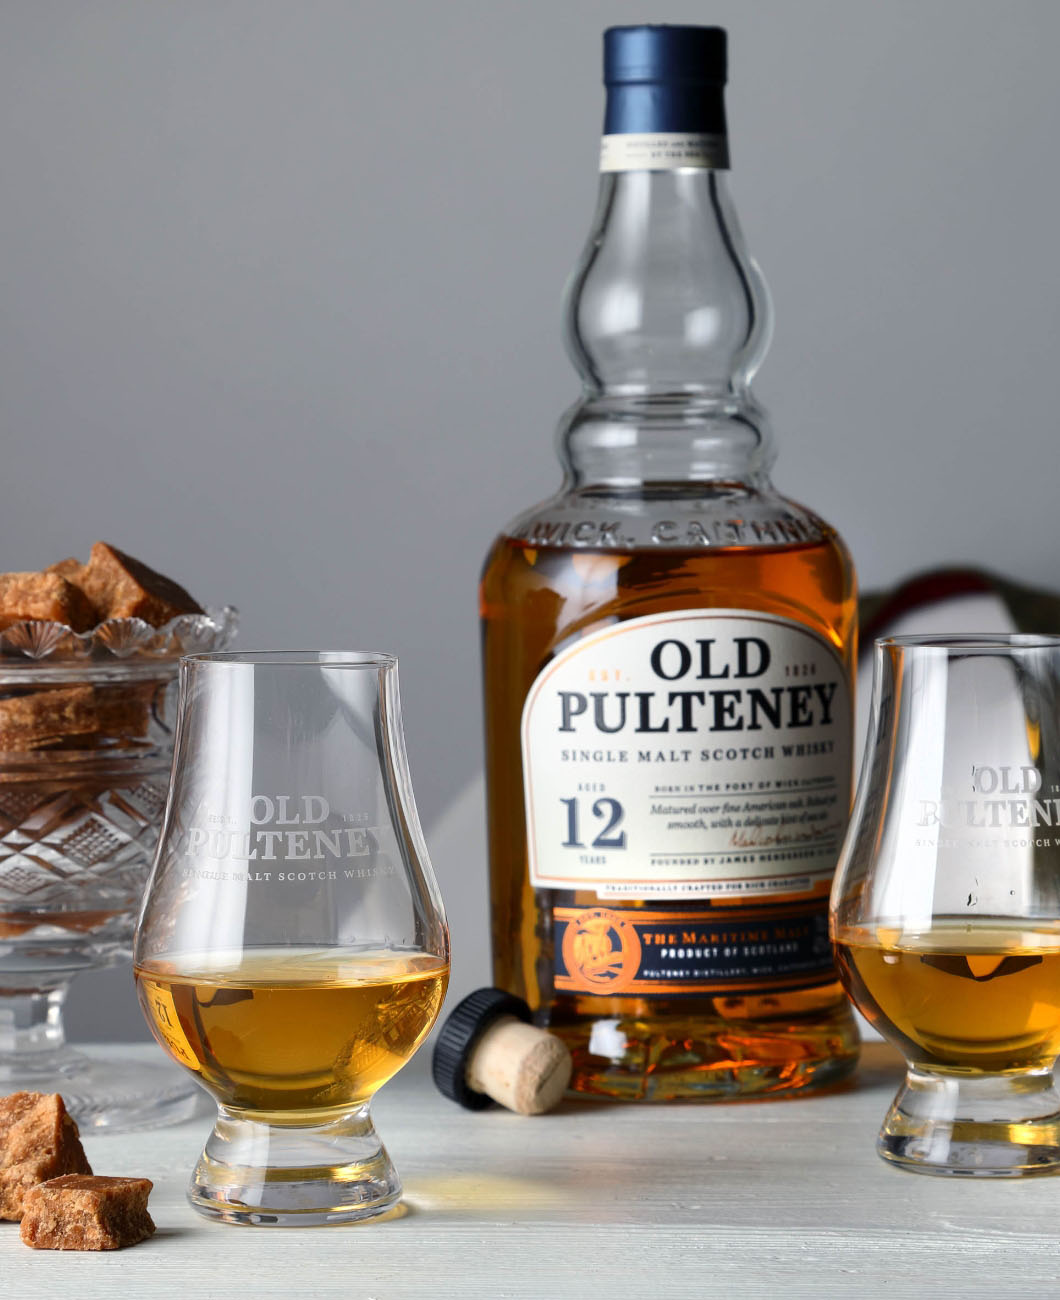 the-old-pulteney-whisky